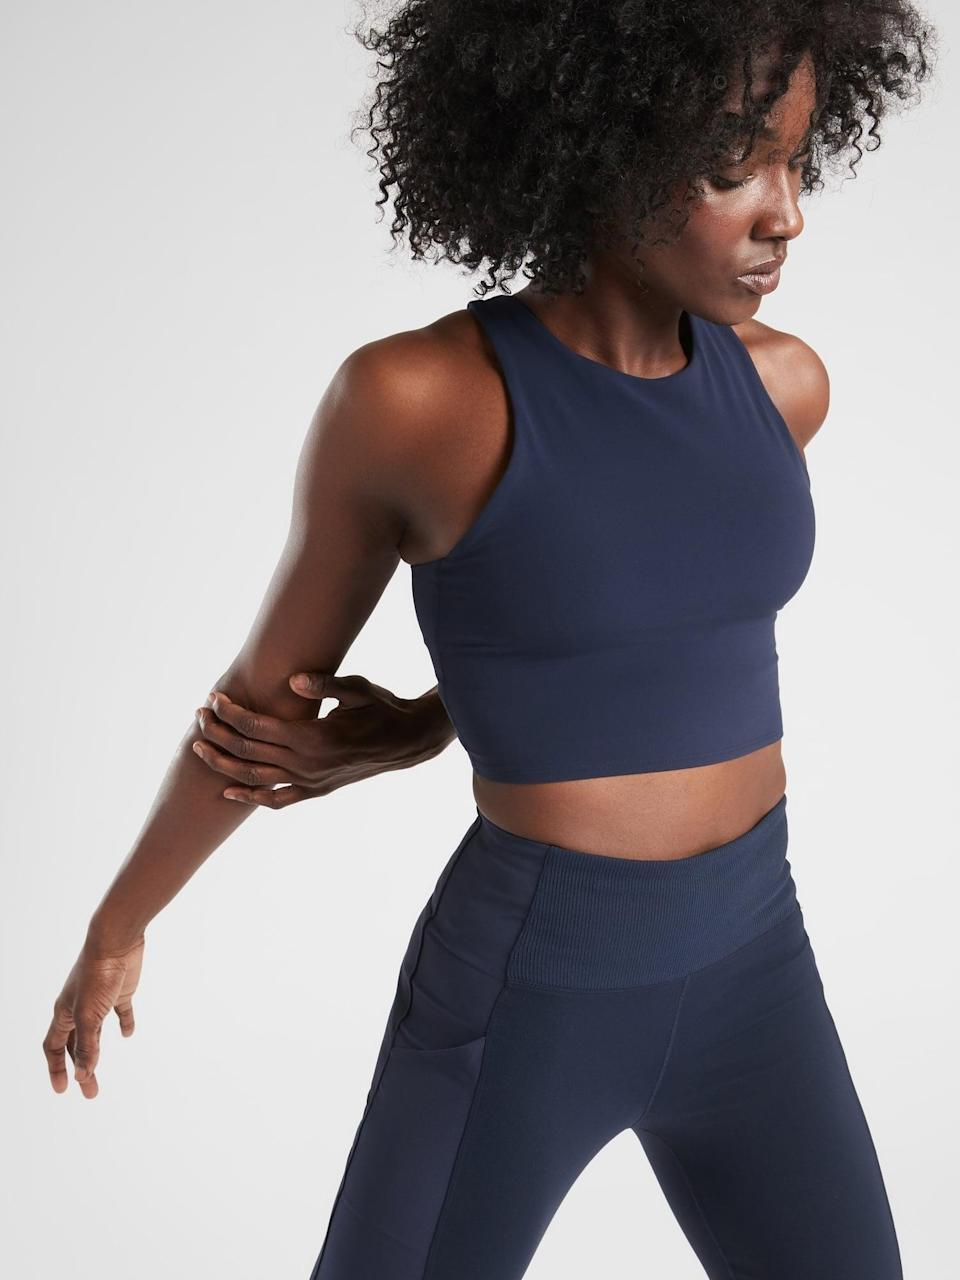 <p>There's a built-in bra inside this crop top, whether you need the <span>Athleta Conscious Crop A-C</span> ($30-$59, originally $59) or the <span>Athleta Conscious Crop D-DD+</span> ($45-$59, originally $59) instead. </p>